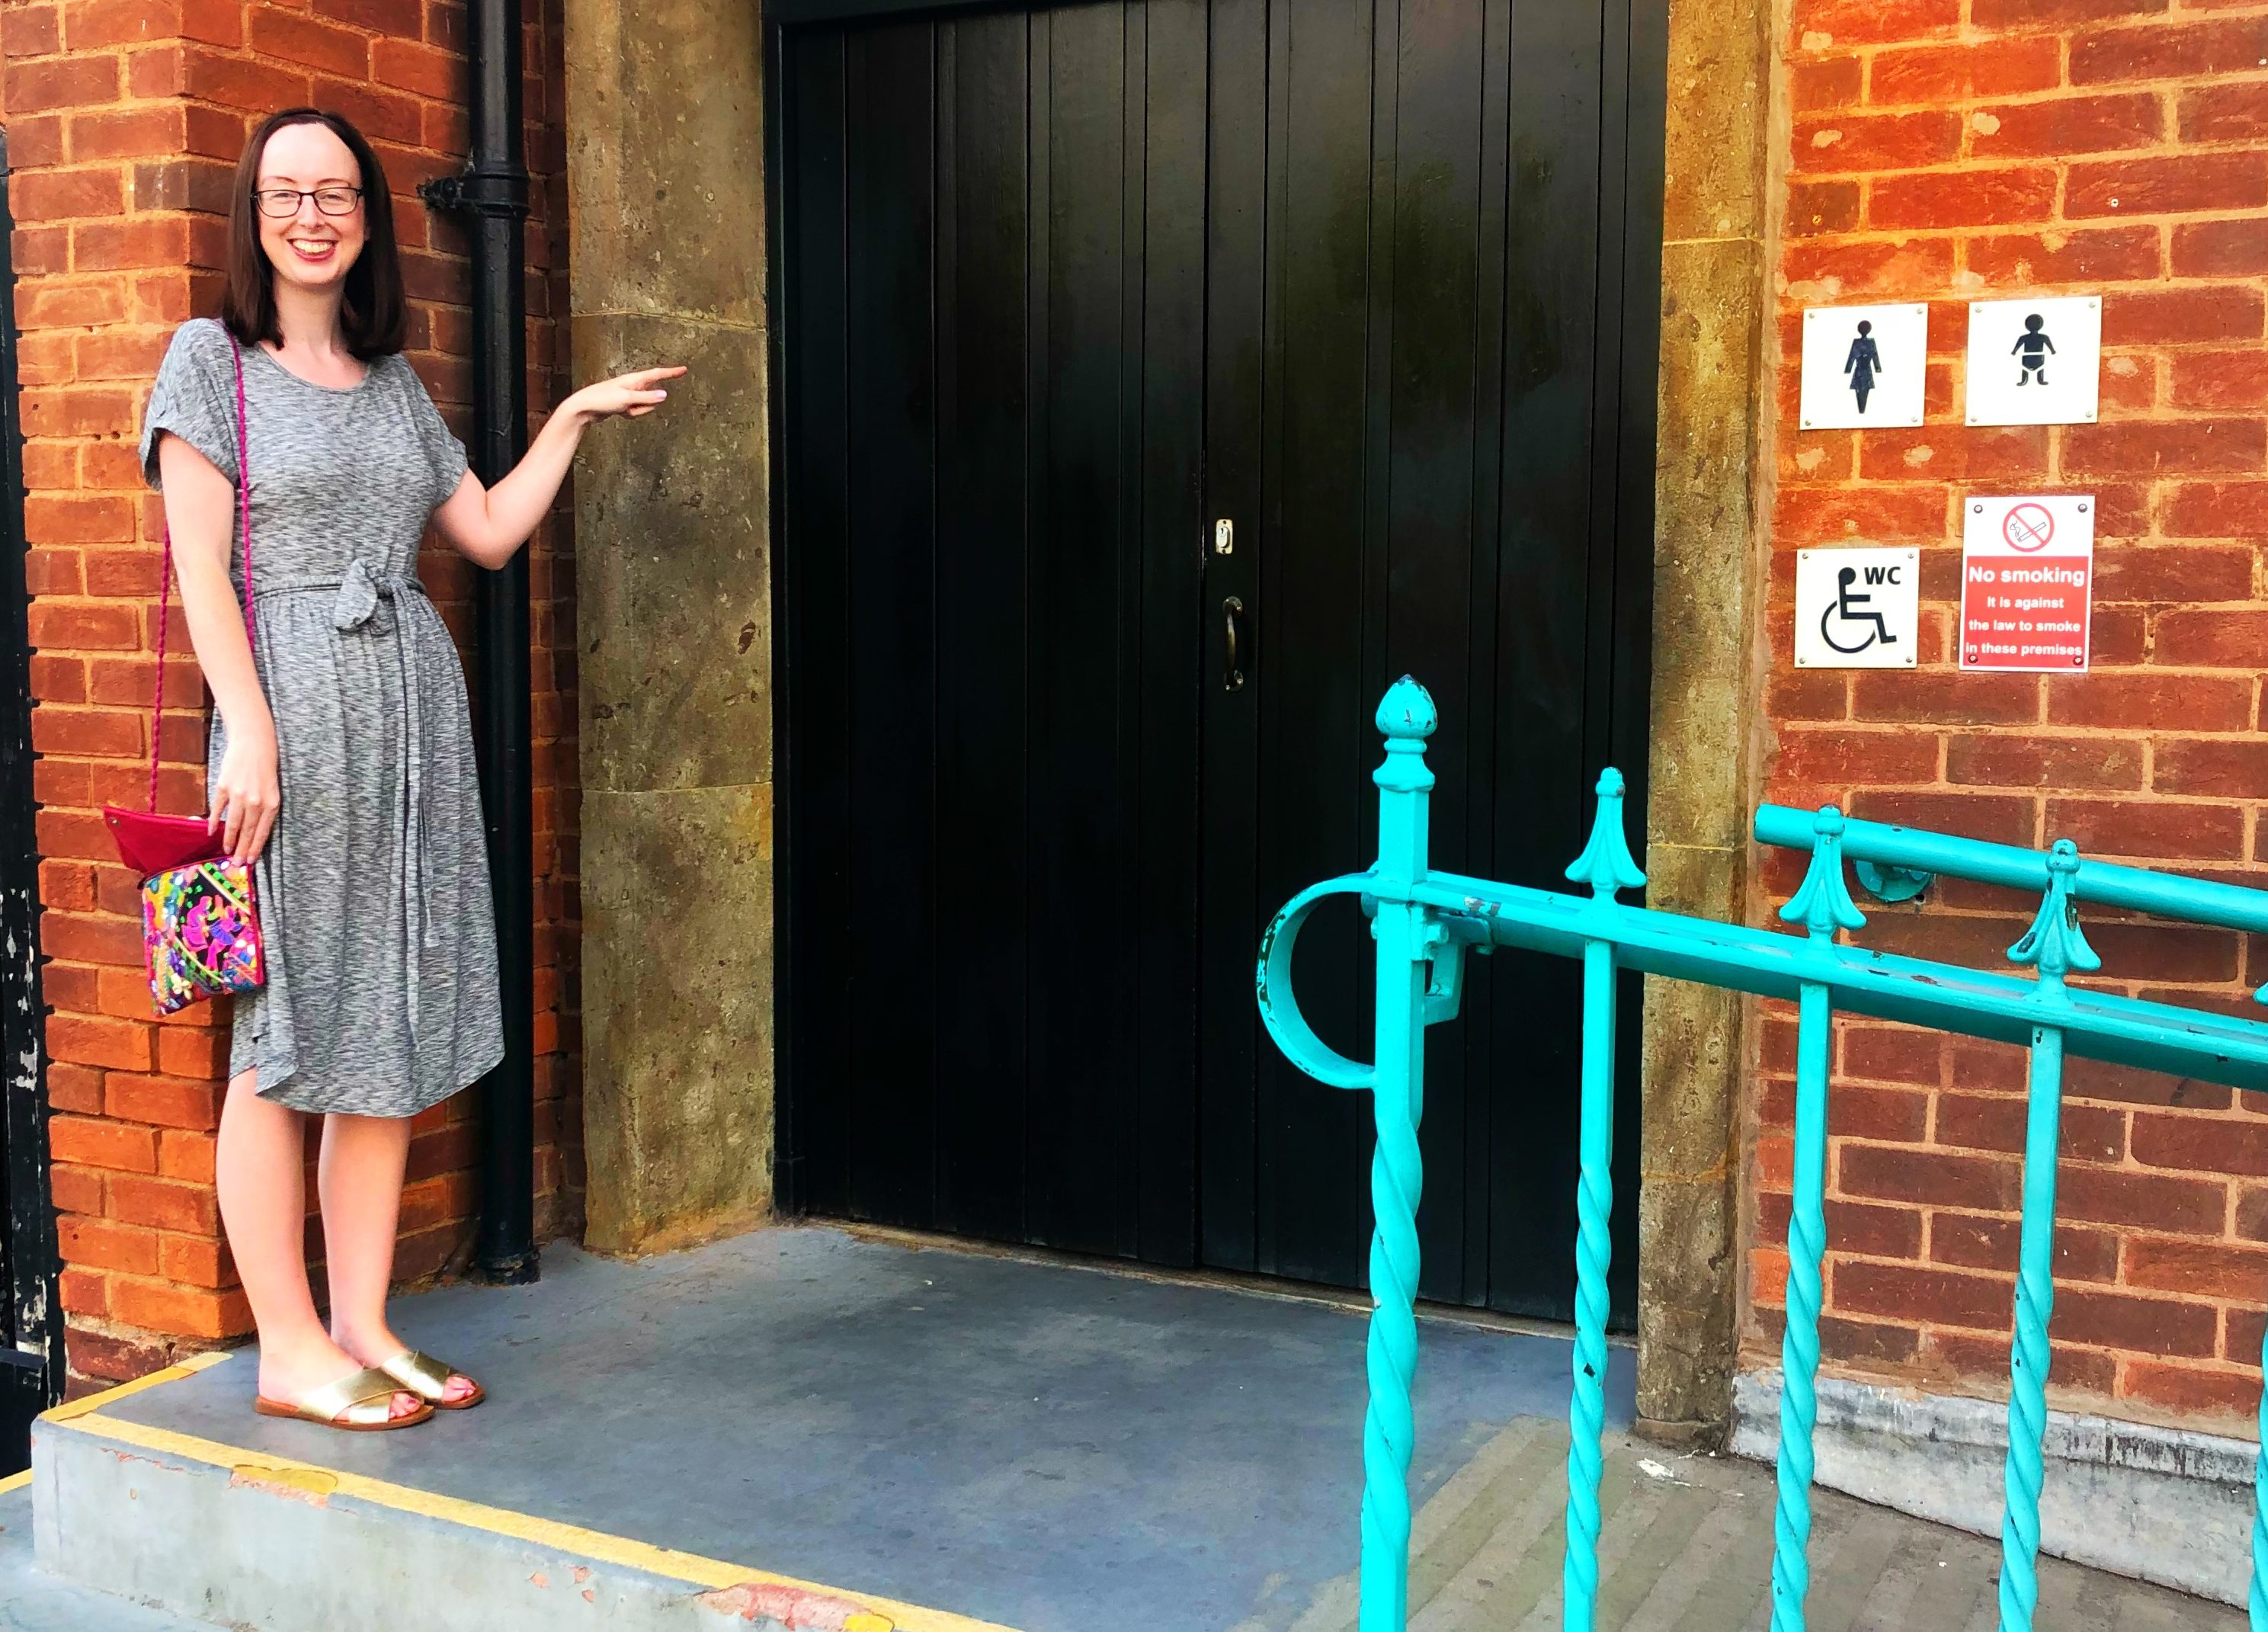 Public loos are a lifeline for me – losing them means losing my freedom